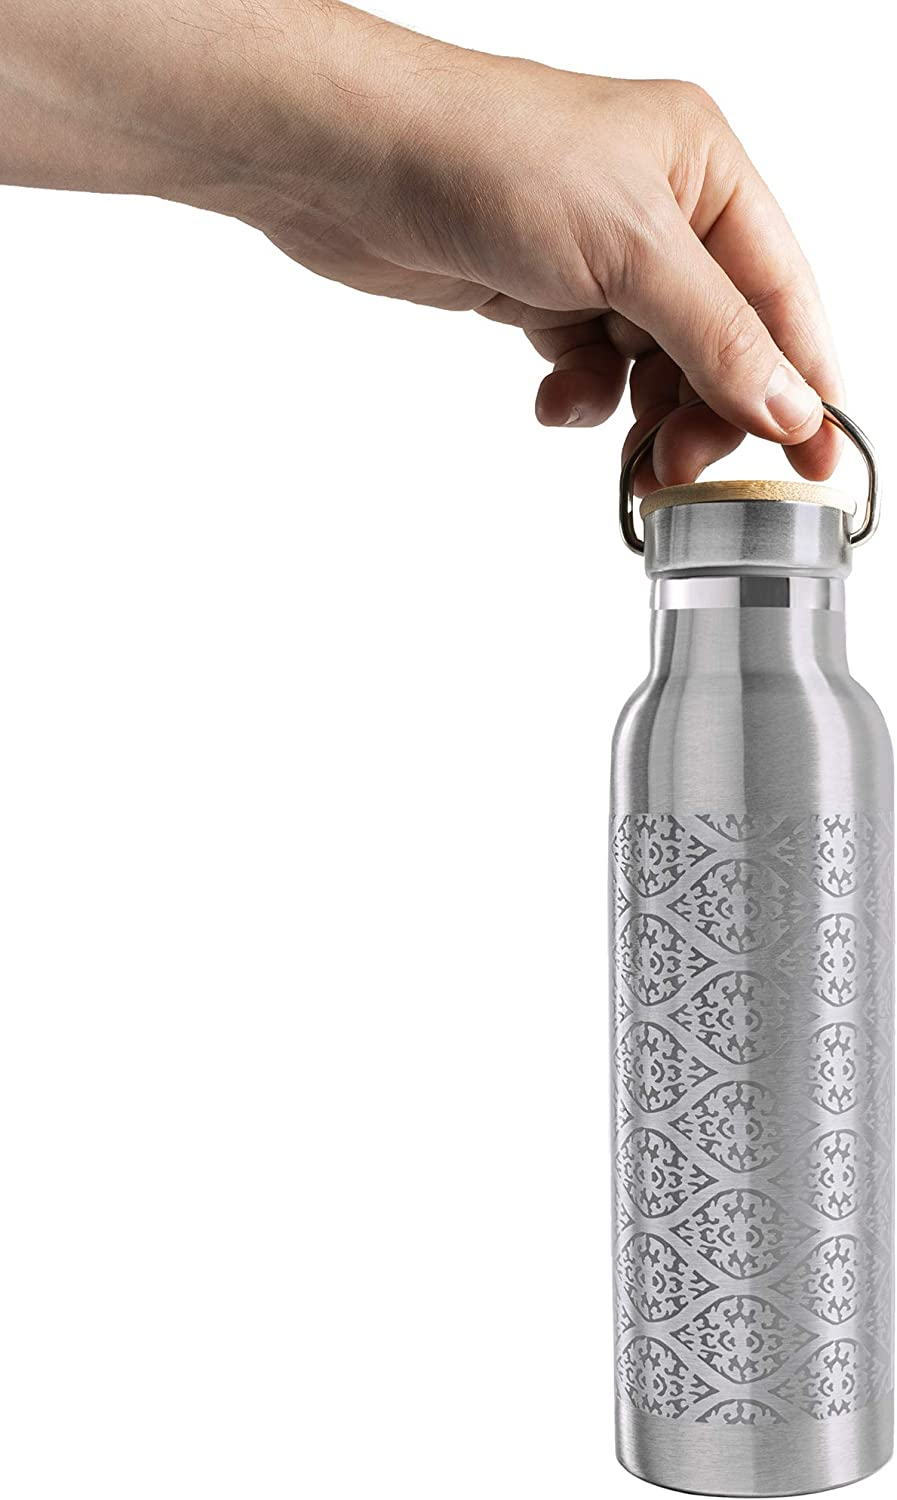 600 ml Lotuscrafts Botella Agua Acero Inoxidable Ideal para Yoga 100/% Herm/ética y Antiderrames Botella Termo para Bebidas Fr/ías y Calientes Deporte y Vida Cotidiana - Doble Pared